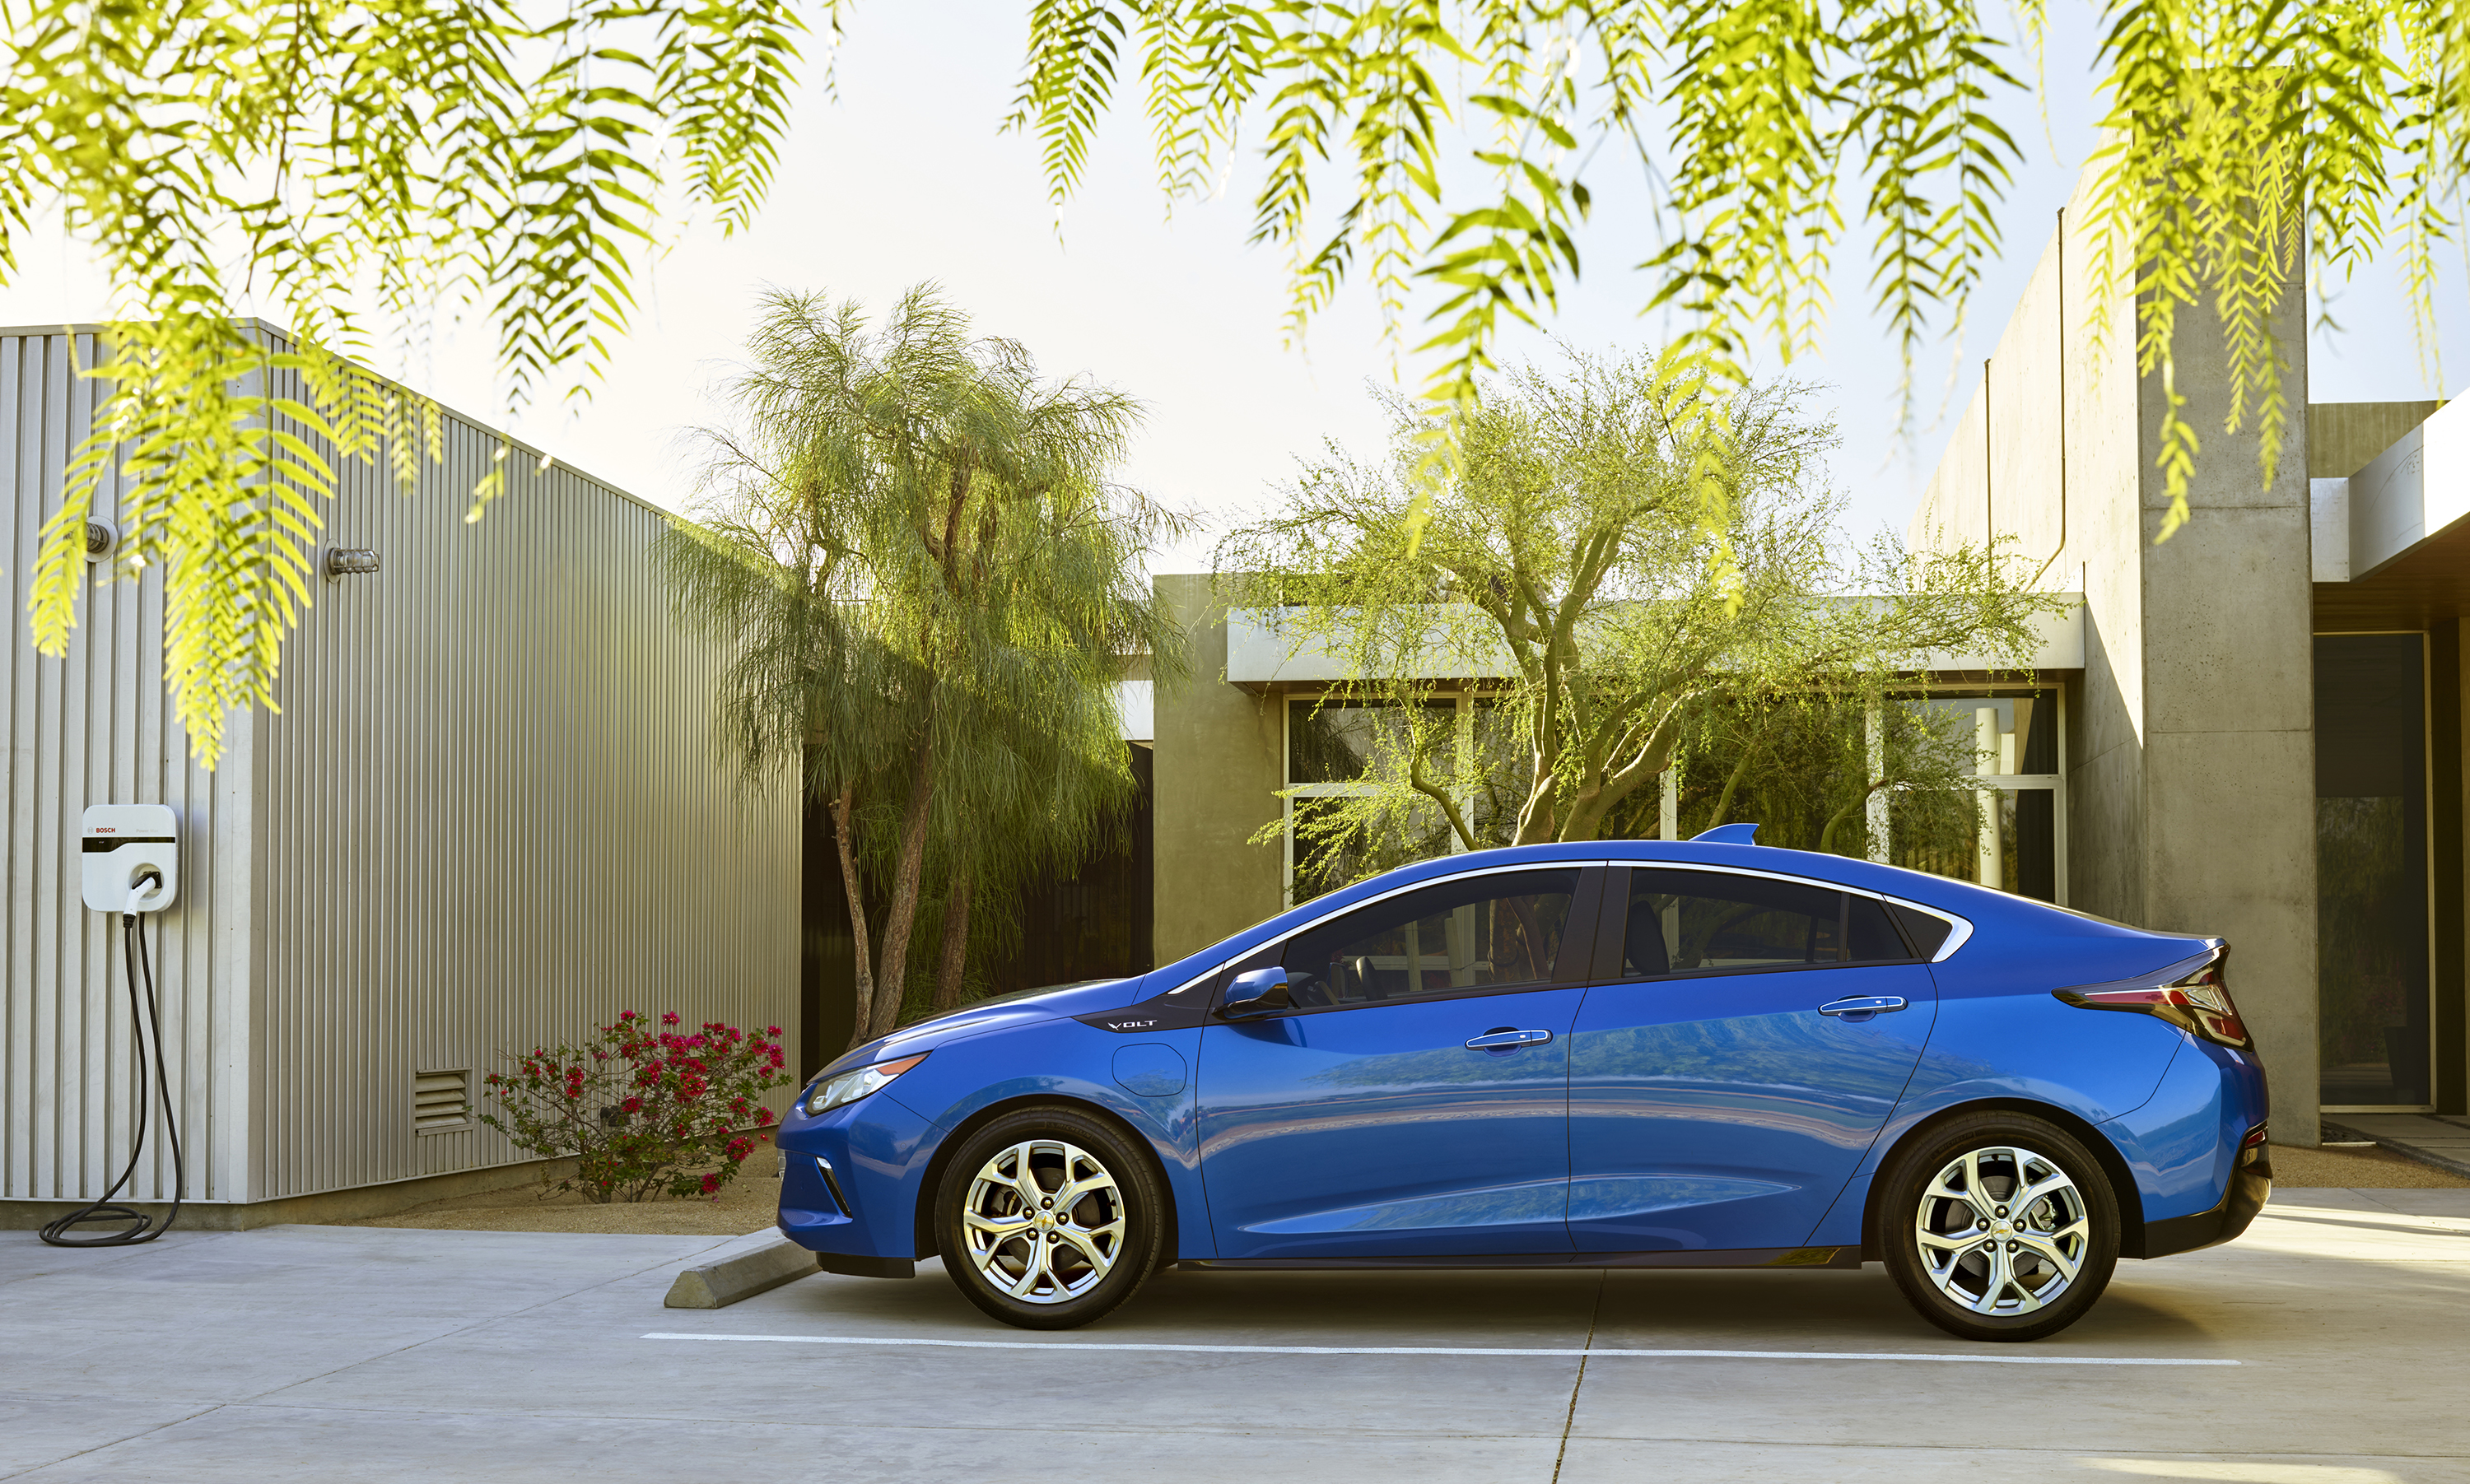 Chevy Volt Tax Credit >> The 2016 Chevy Volt Will Cost Just 26k After Tax Credits